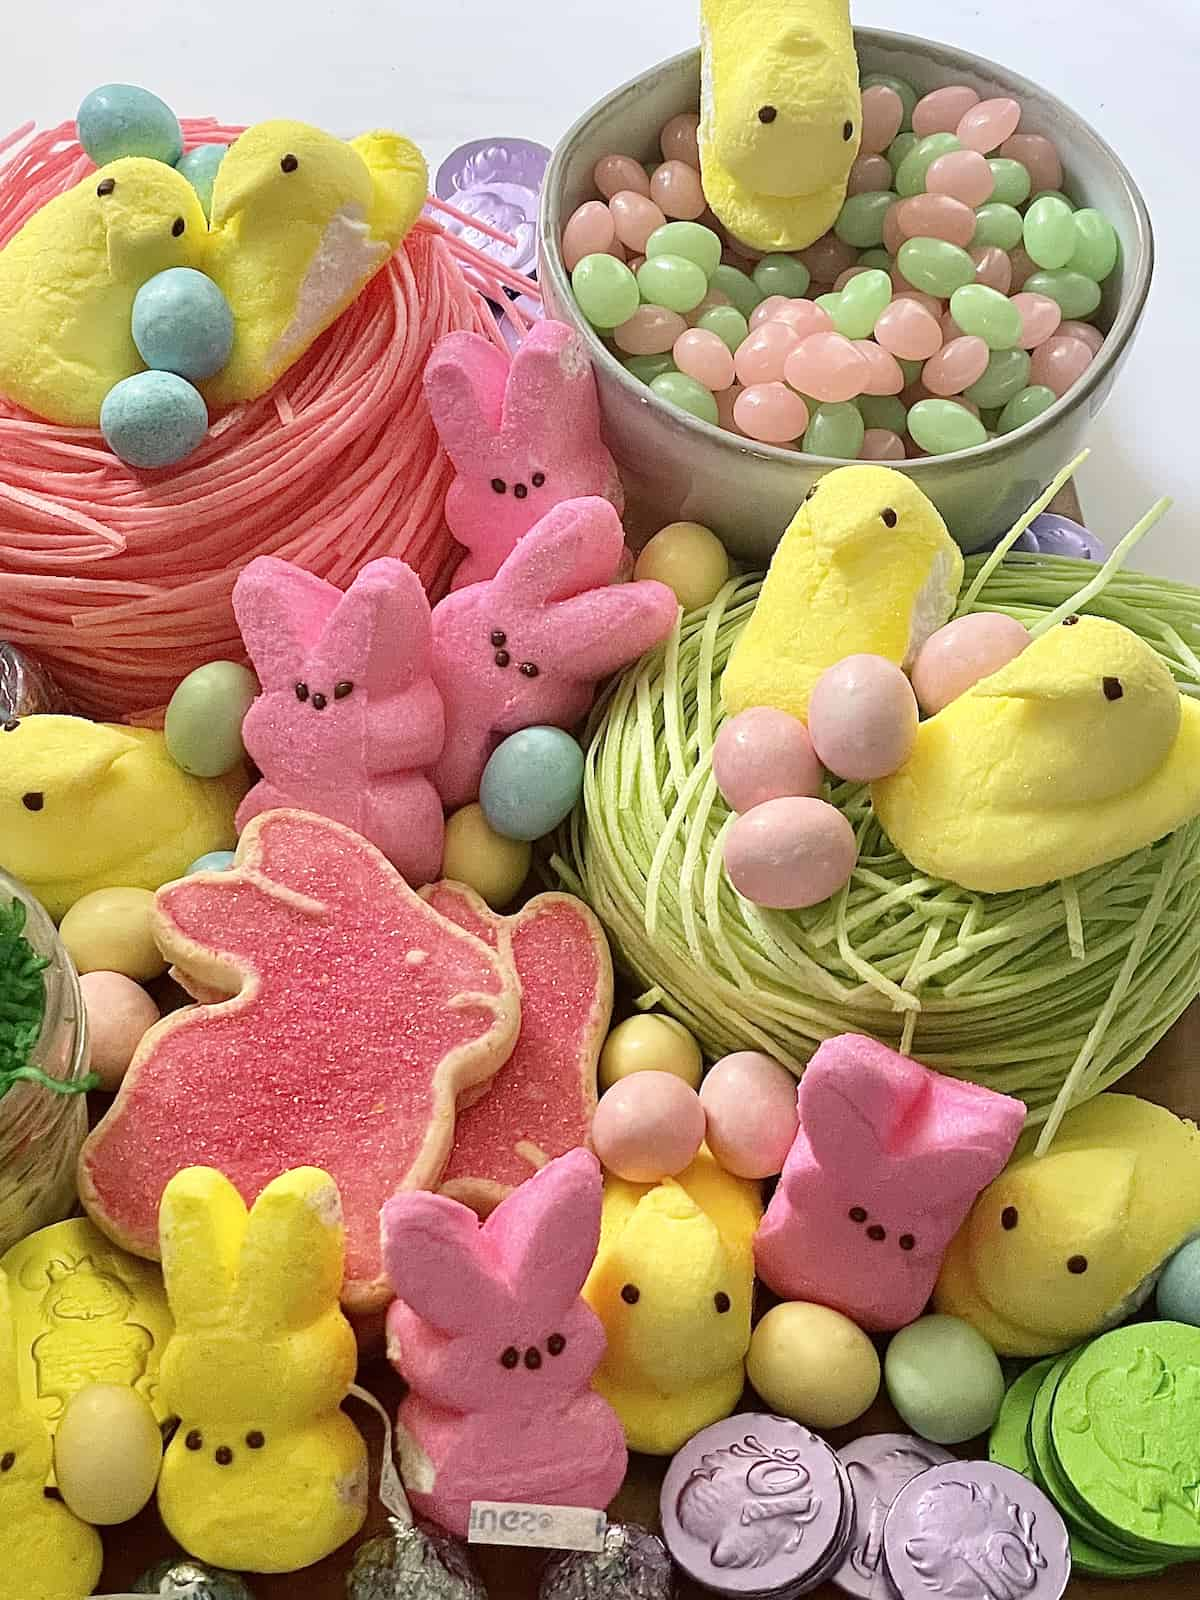 birds nest, peeps, cookies, and candies on a charcuterie board